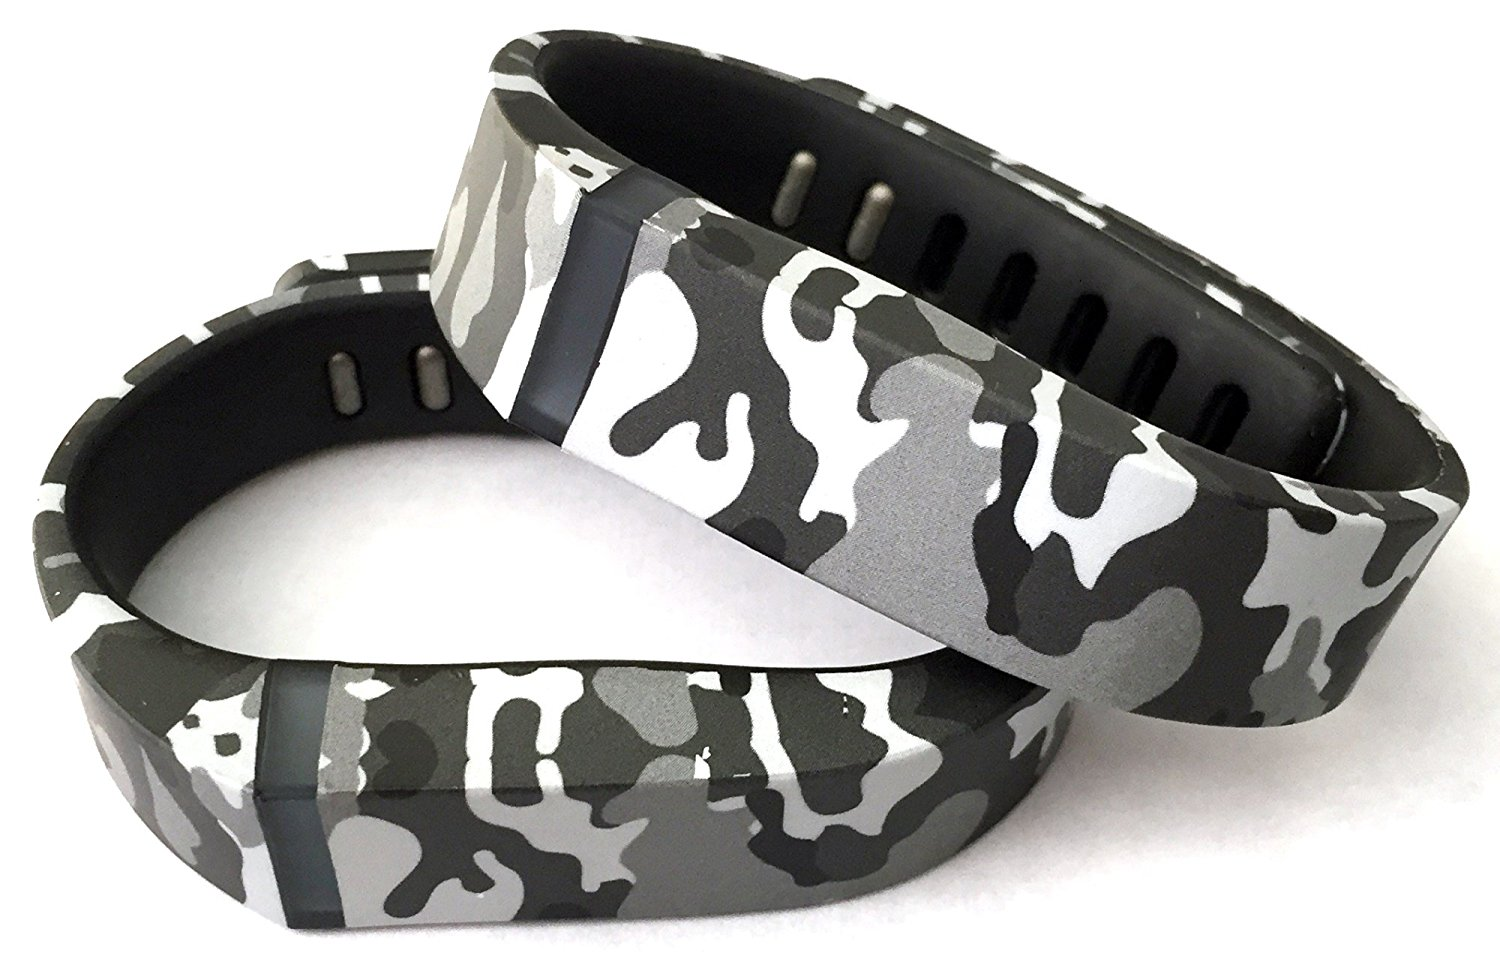 2pcs Small Camouflage Camo Army Military Color Replacement Bands With Clasp for Fitbit FLEX Only /No tracker/ Wireless Activity Bracelet Sport Wristband Fit Bit Flex Bracelet Sport Arm Band Armband